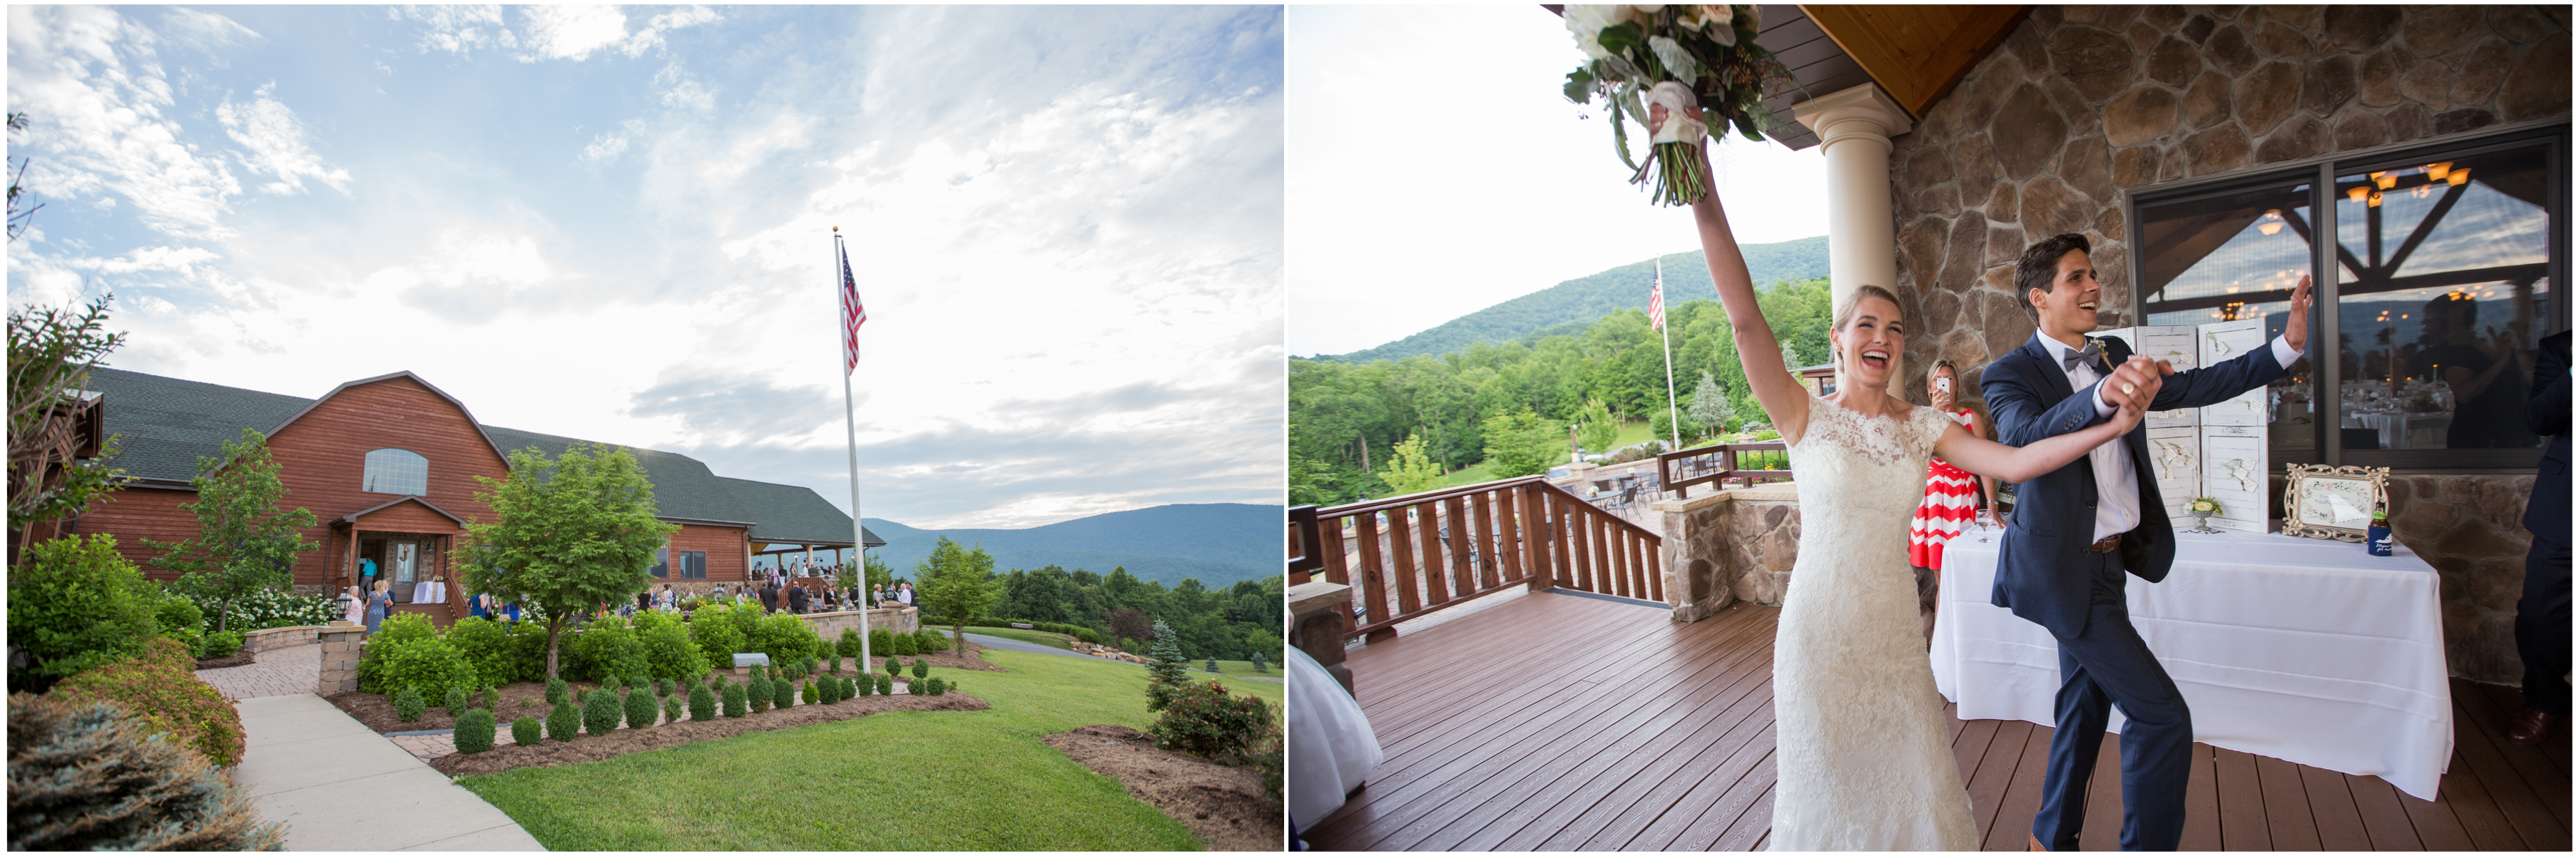 Irvine Estate Wedding | Lexington, VA